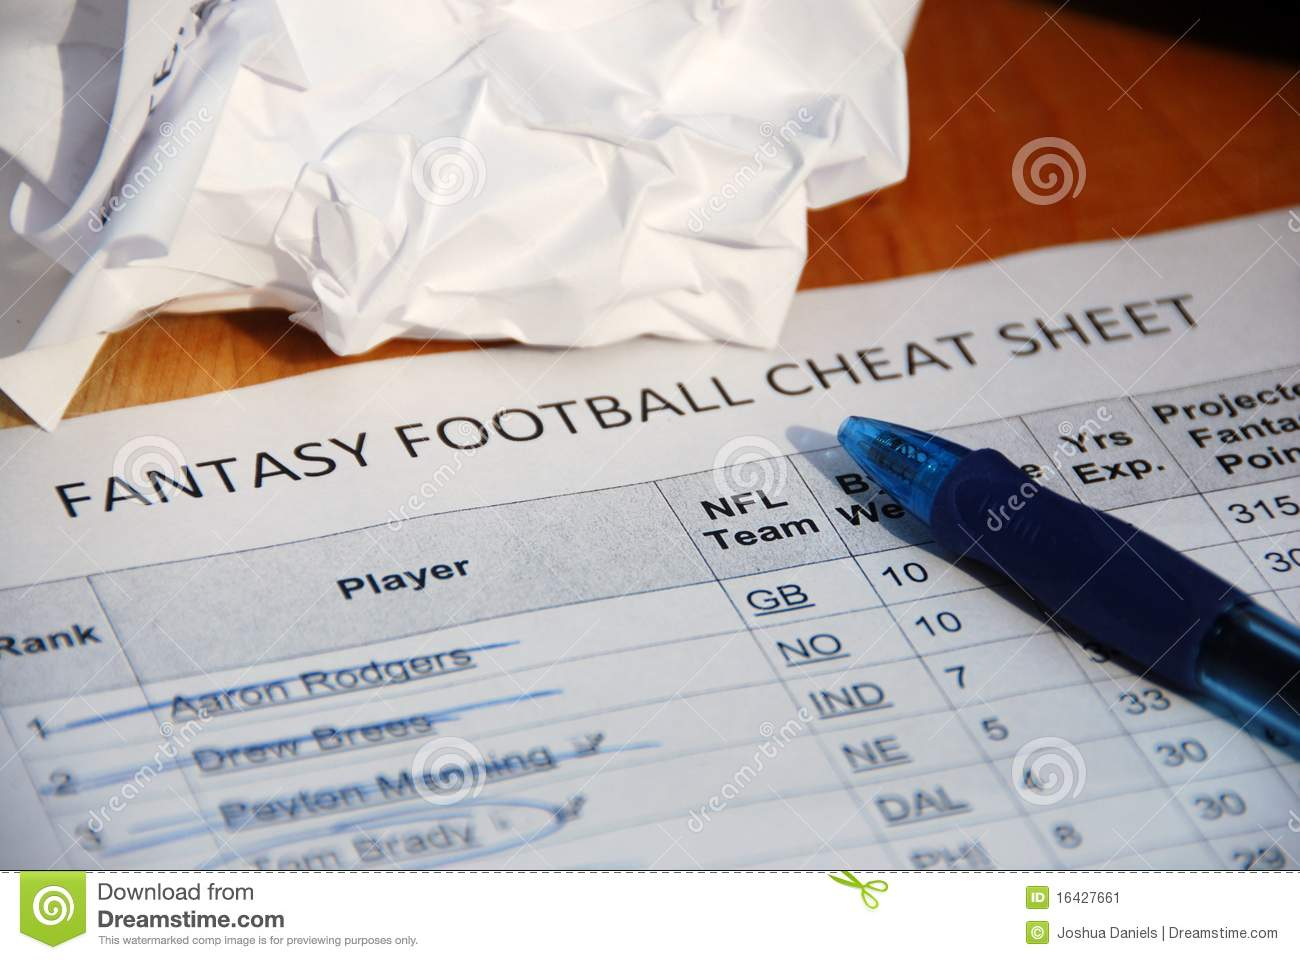 NFL Fantasy Football Draft Cheat Sheet Stock Image Image